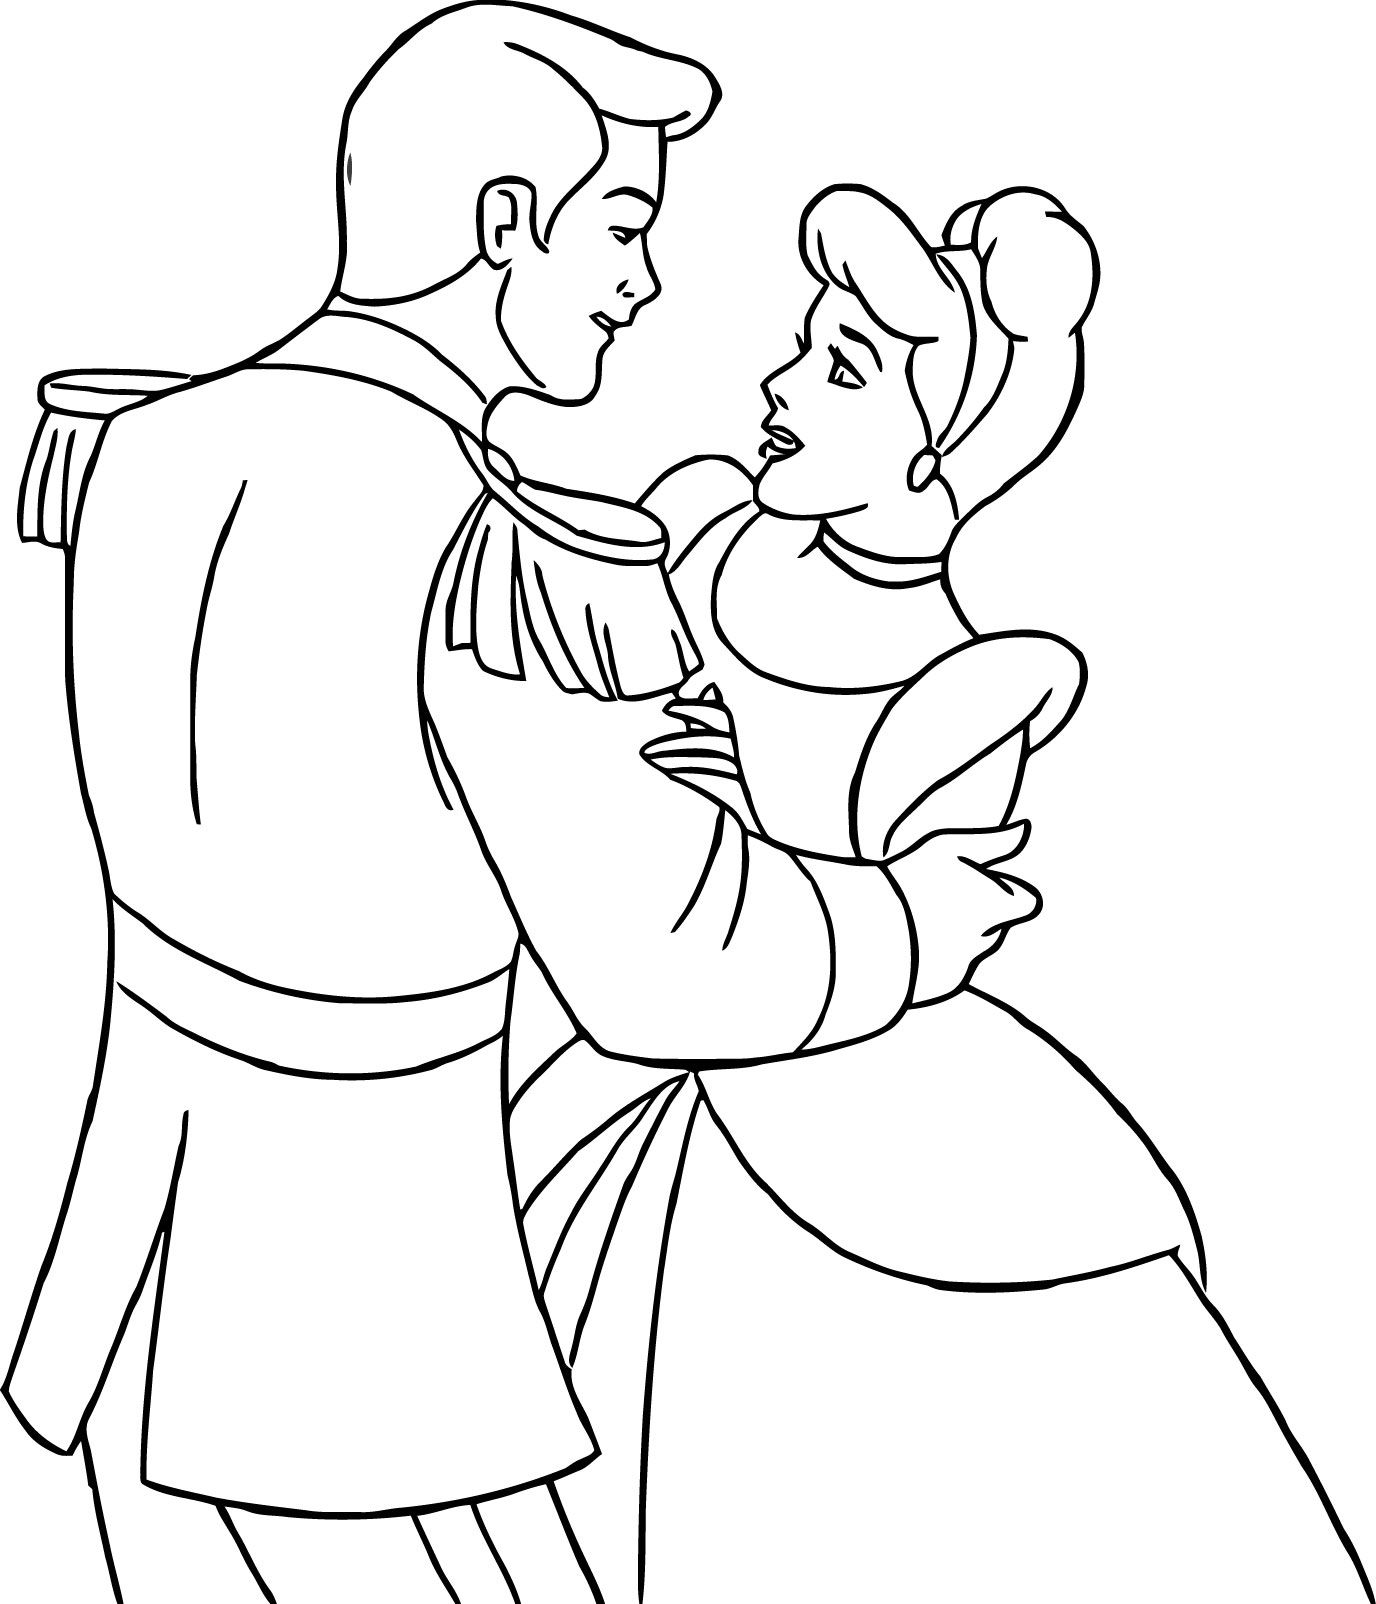 Cinderella and Prince Charming Coloring Pages | Pinterest